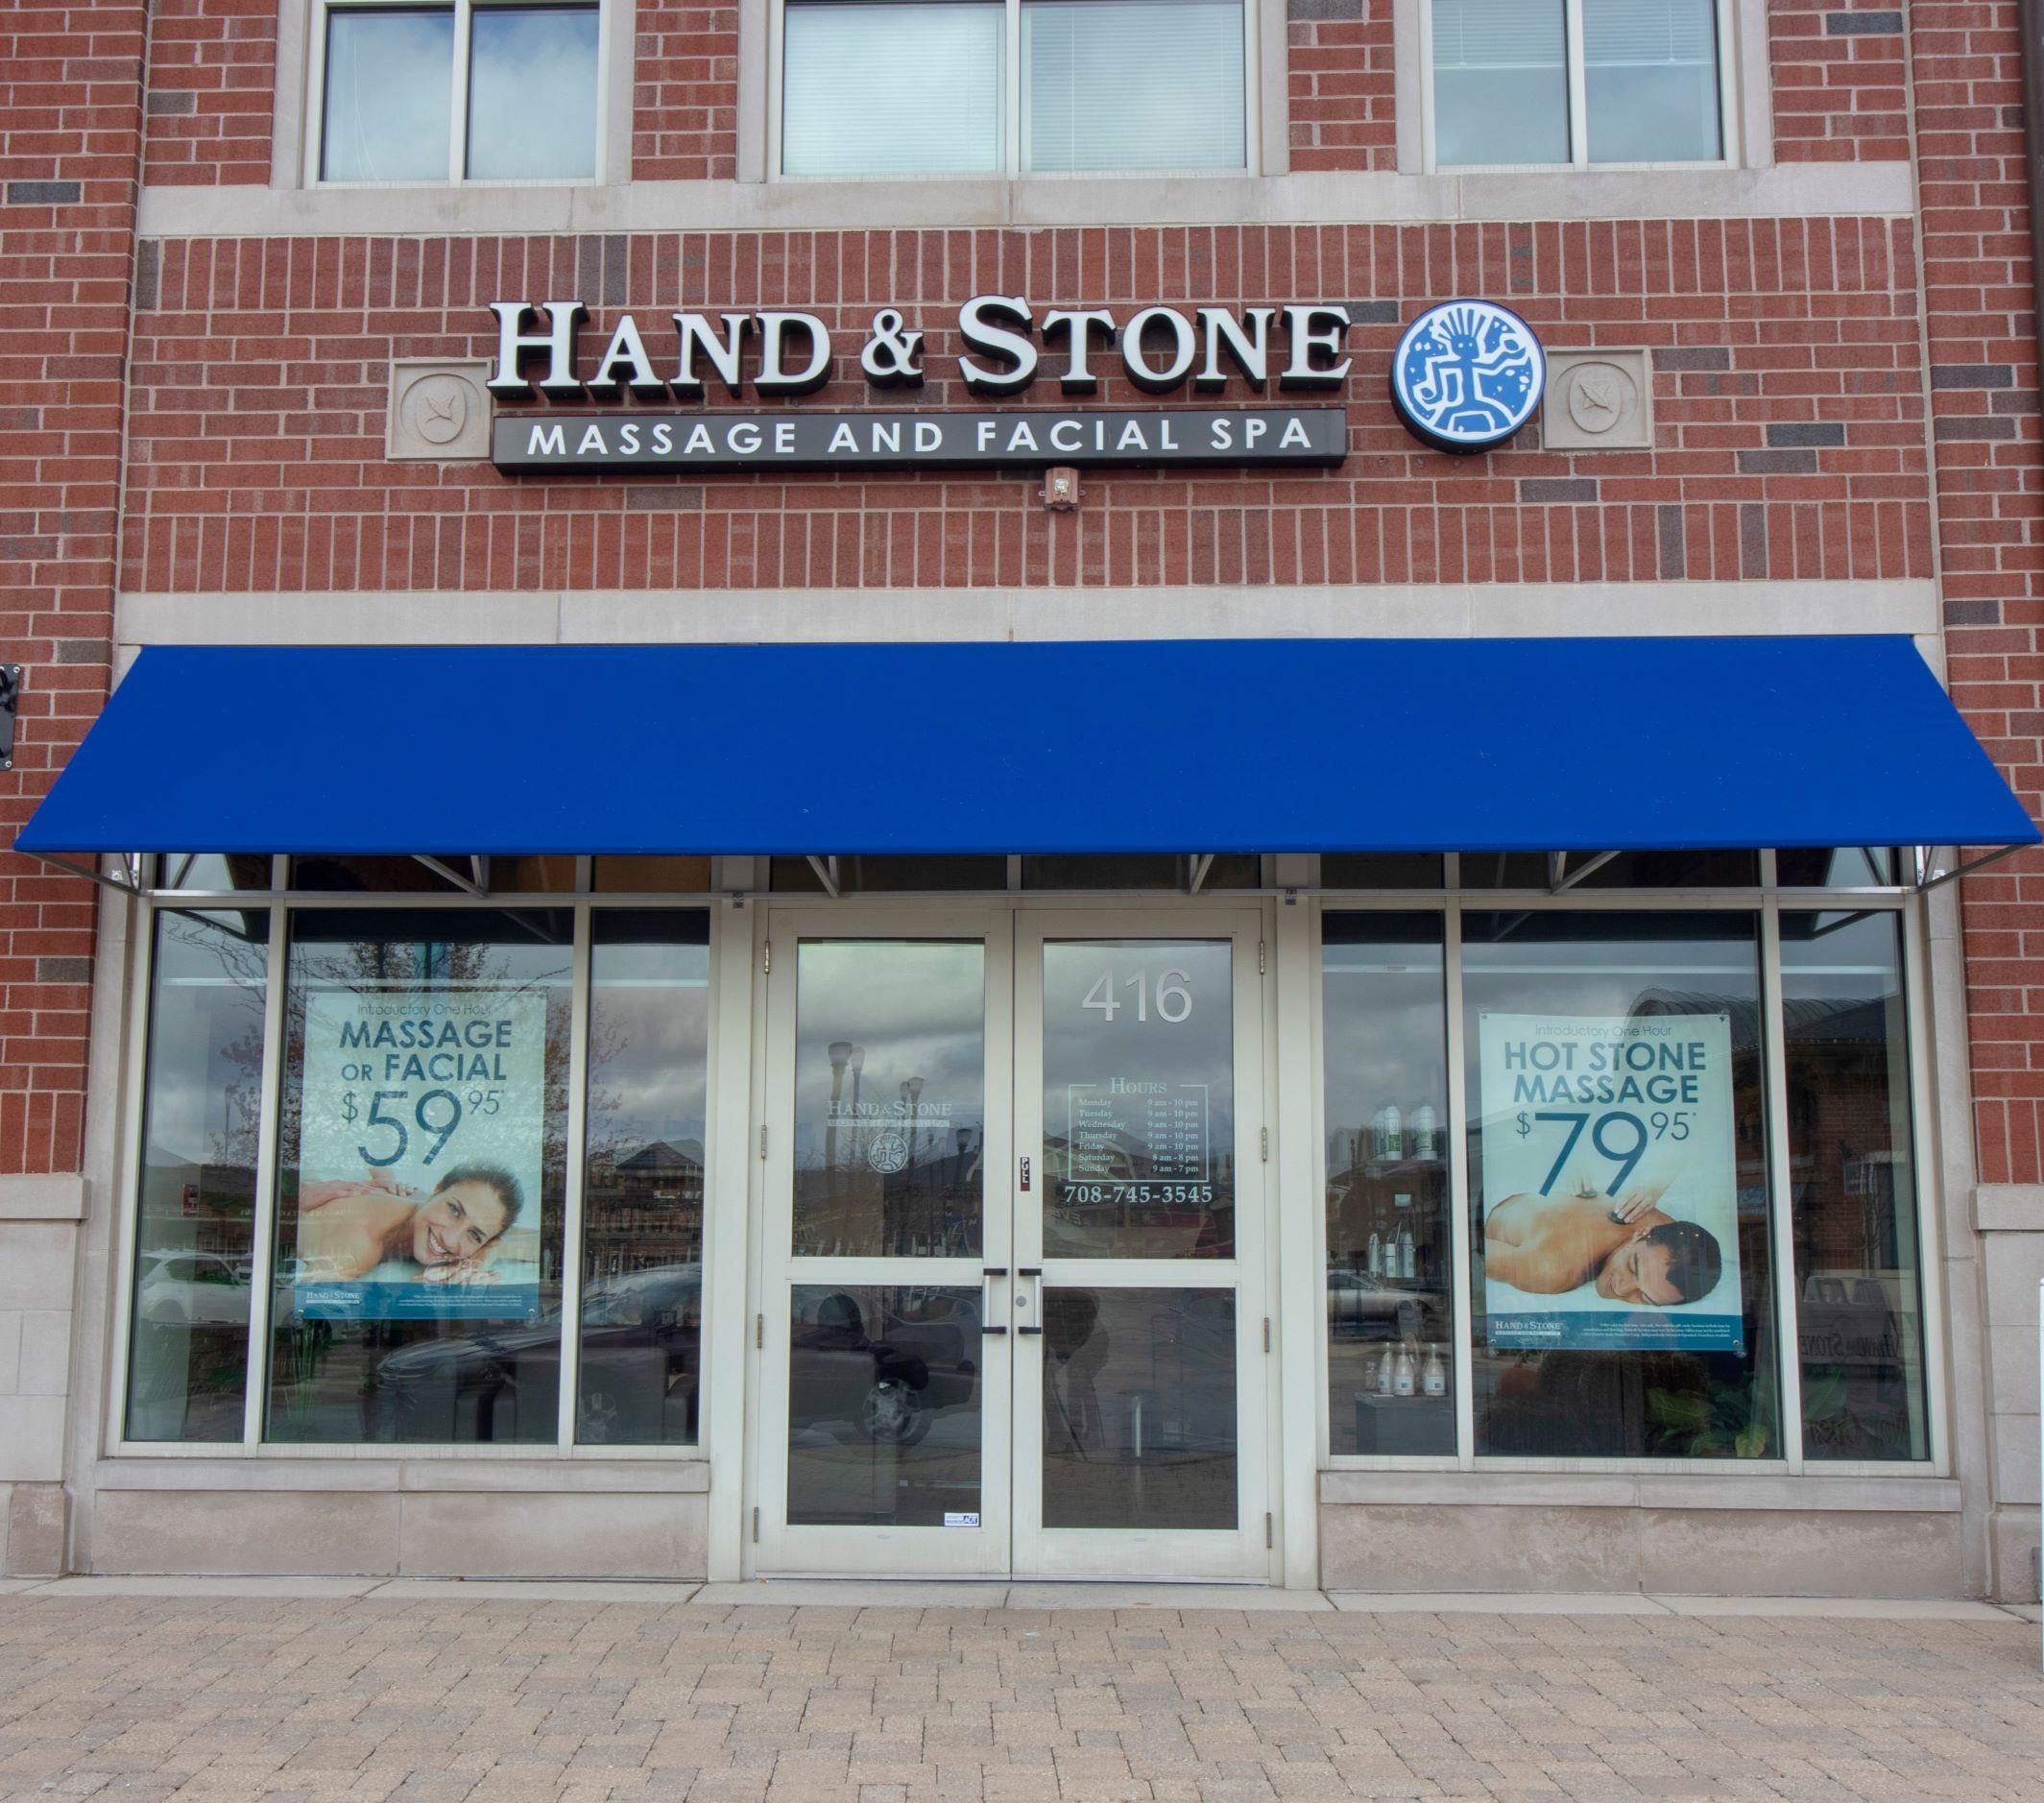 Hand & Stone Orland Park IL